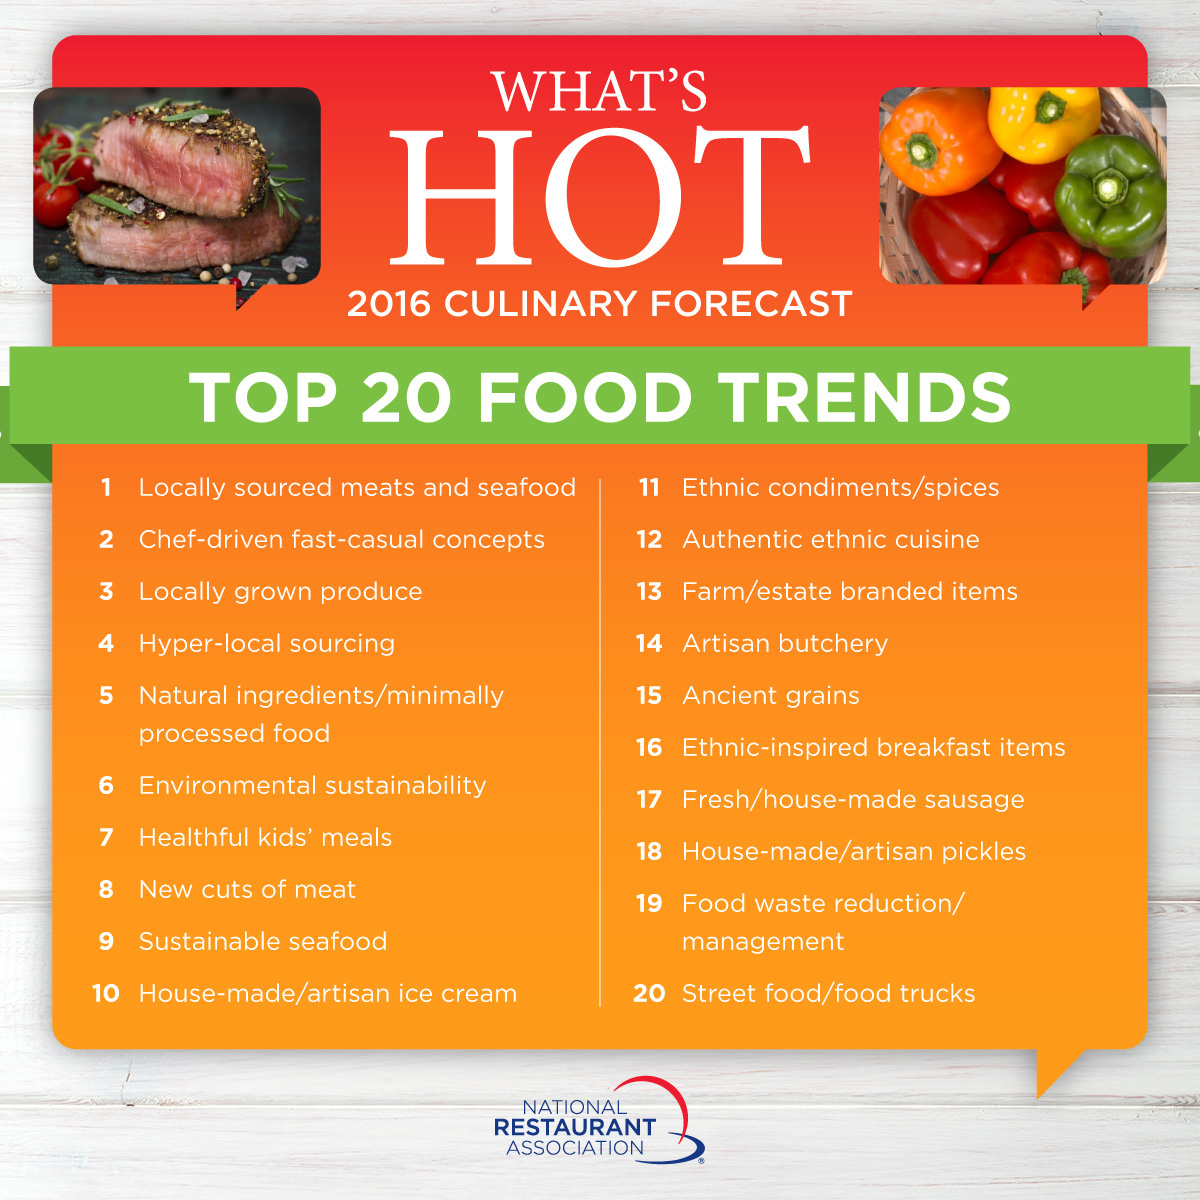 What's Hot 2016 Culinary Forecast: Top 20 Food Trends